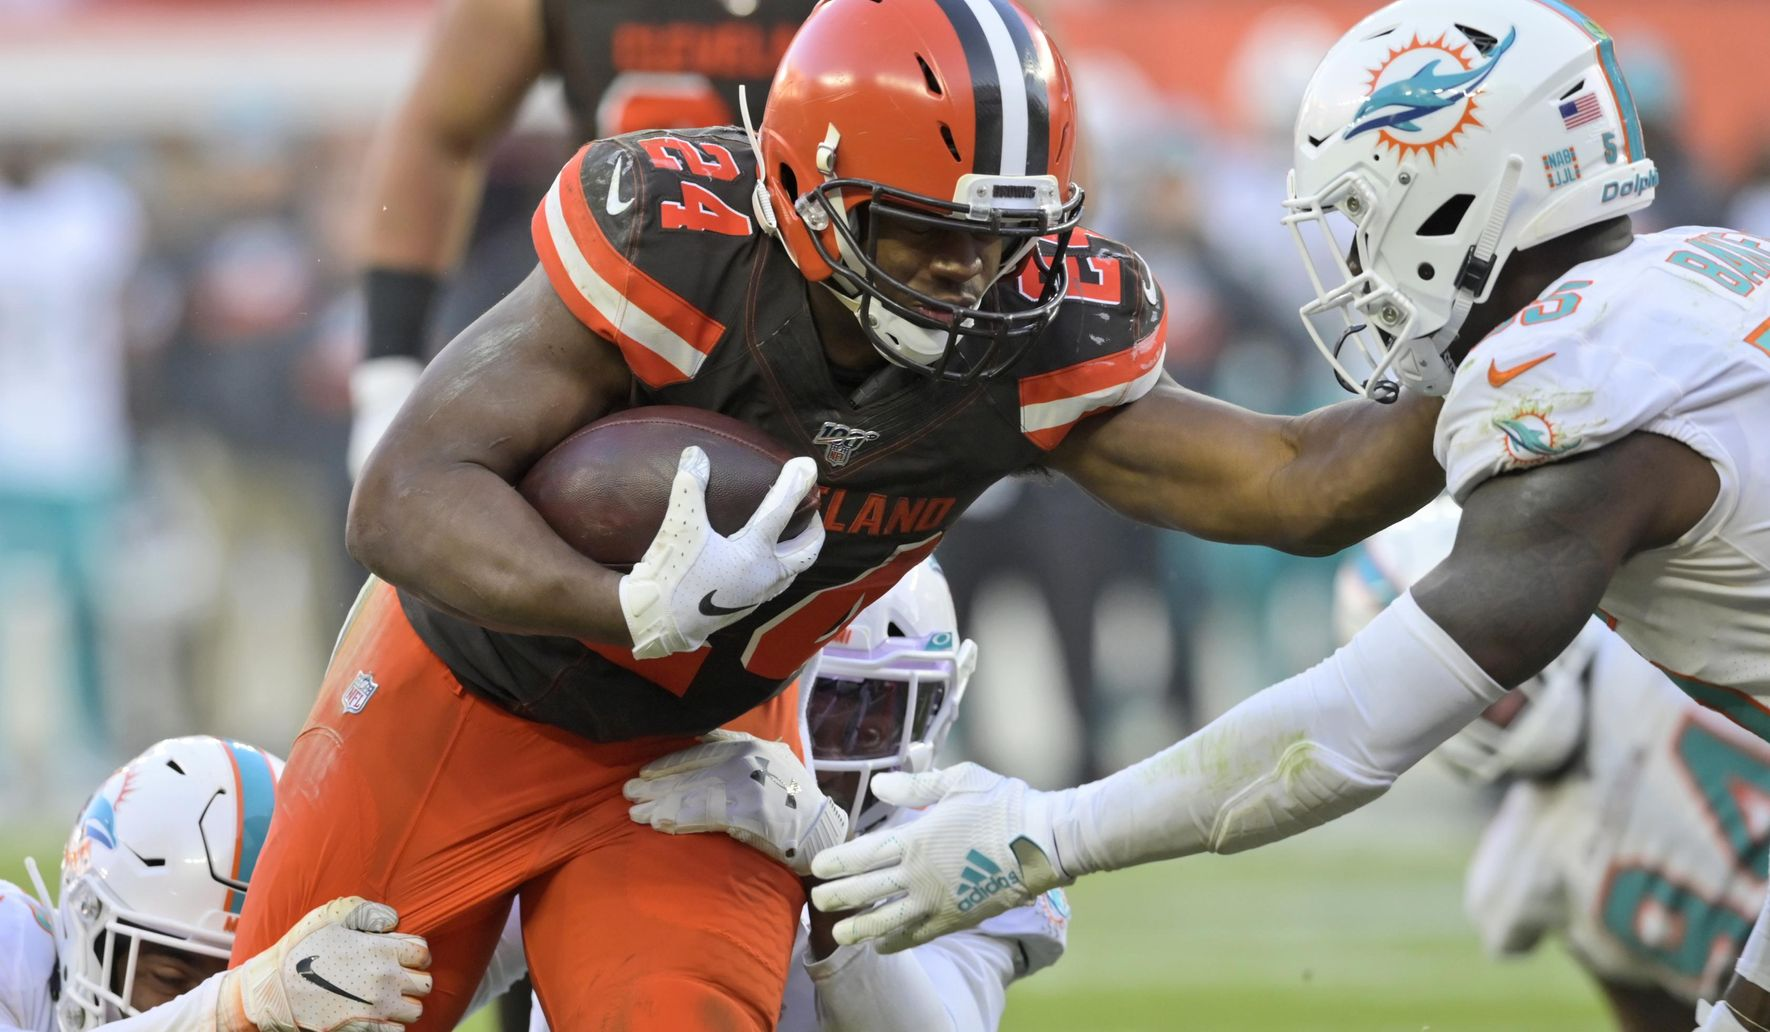 Dolphins_browns_football_71531_c0-141-3365-2102_s1770x1032